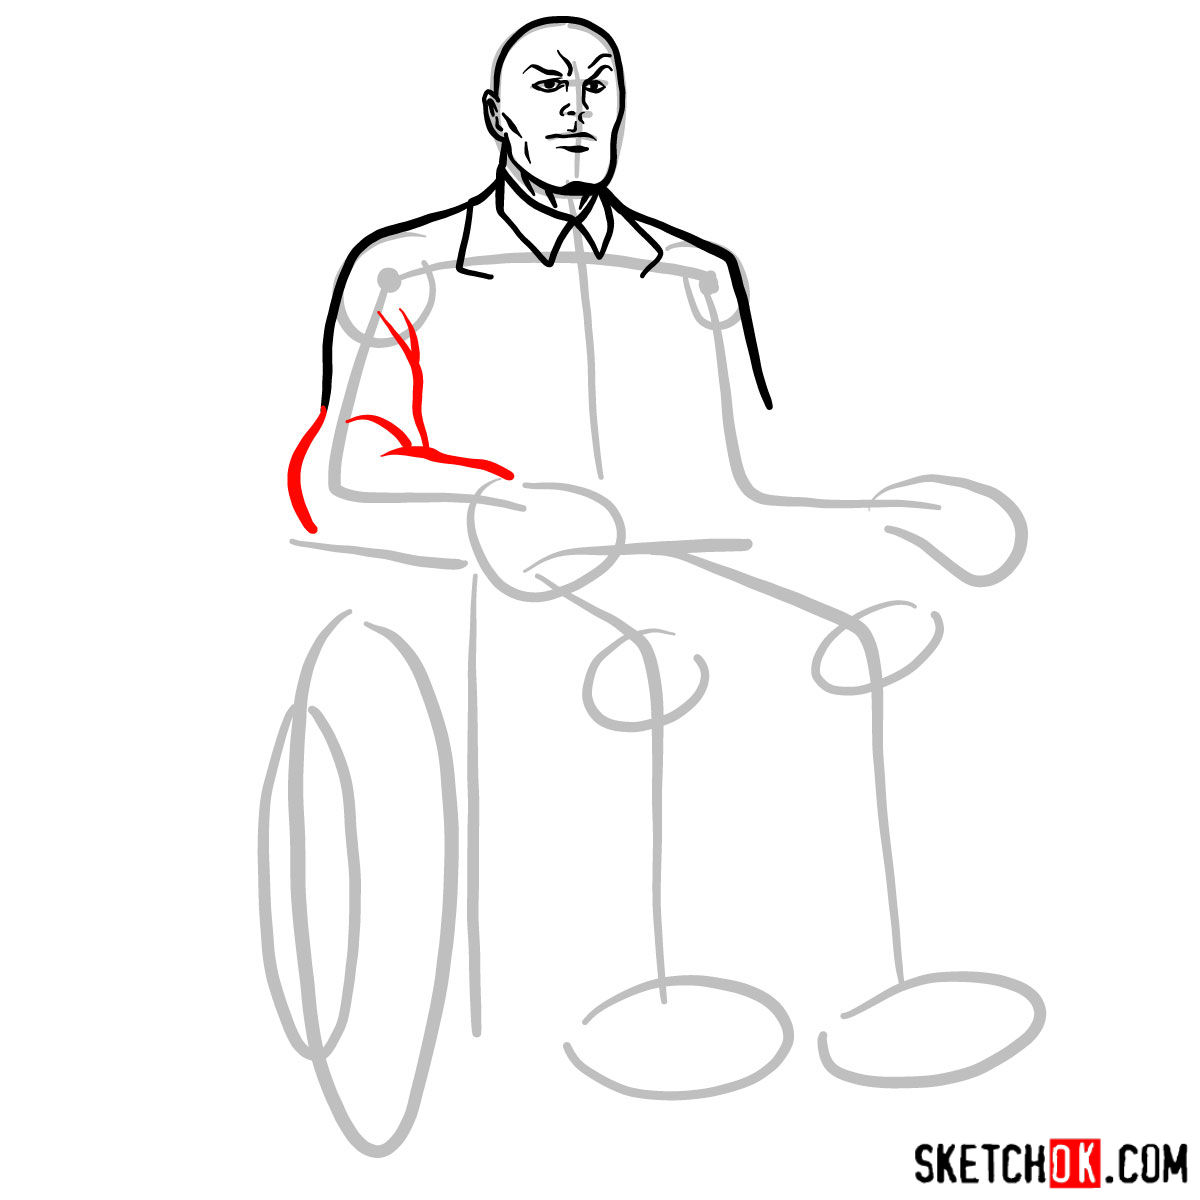 How to draw Professor X - 